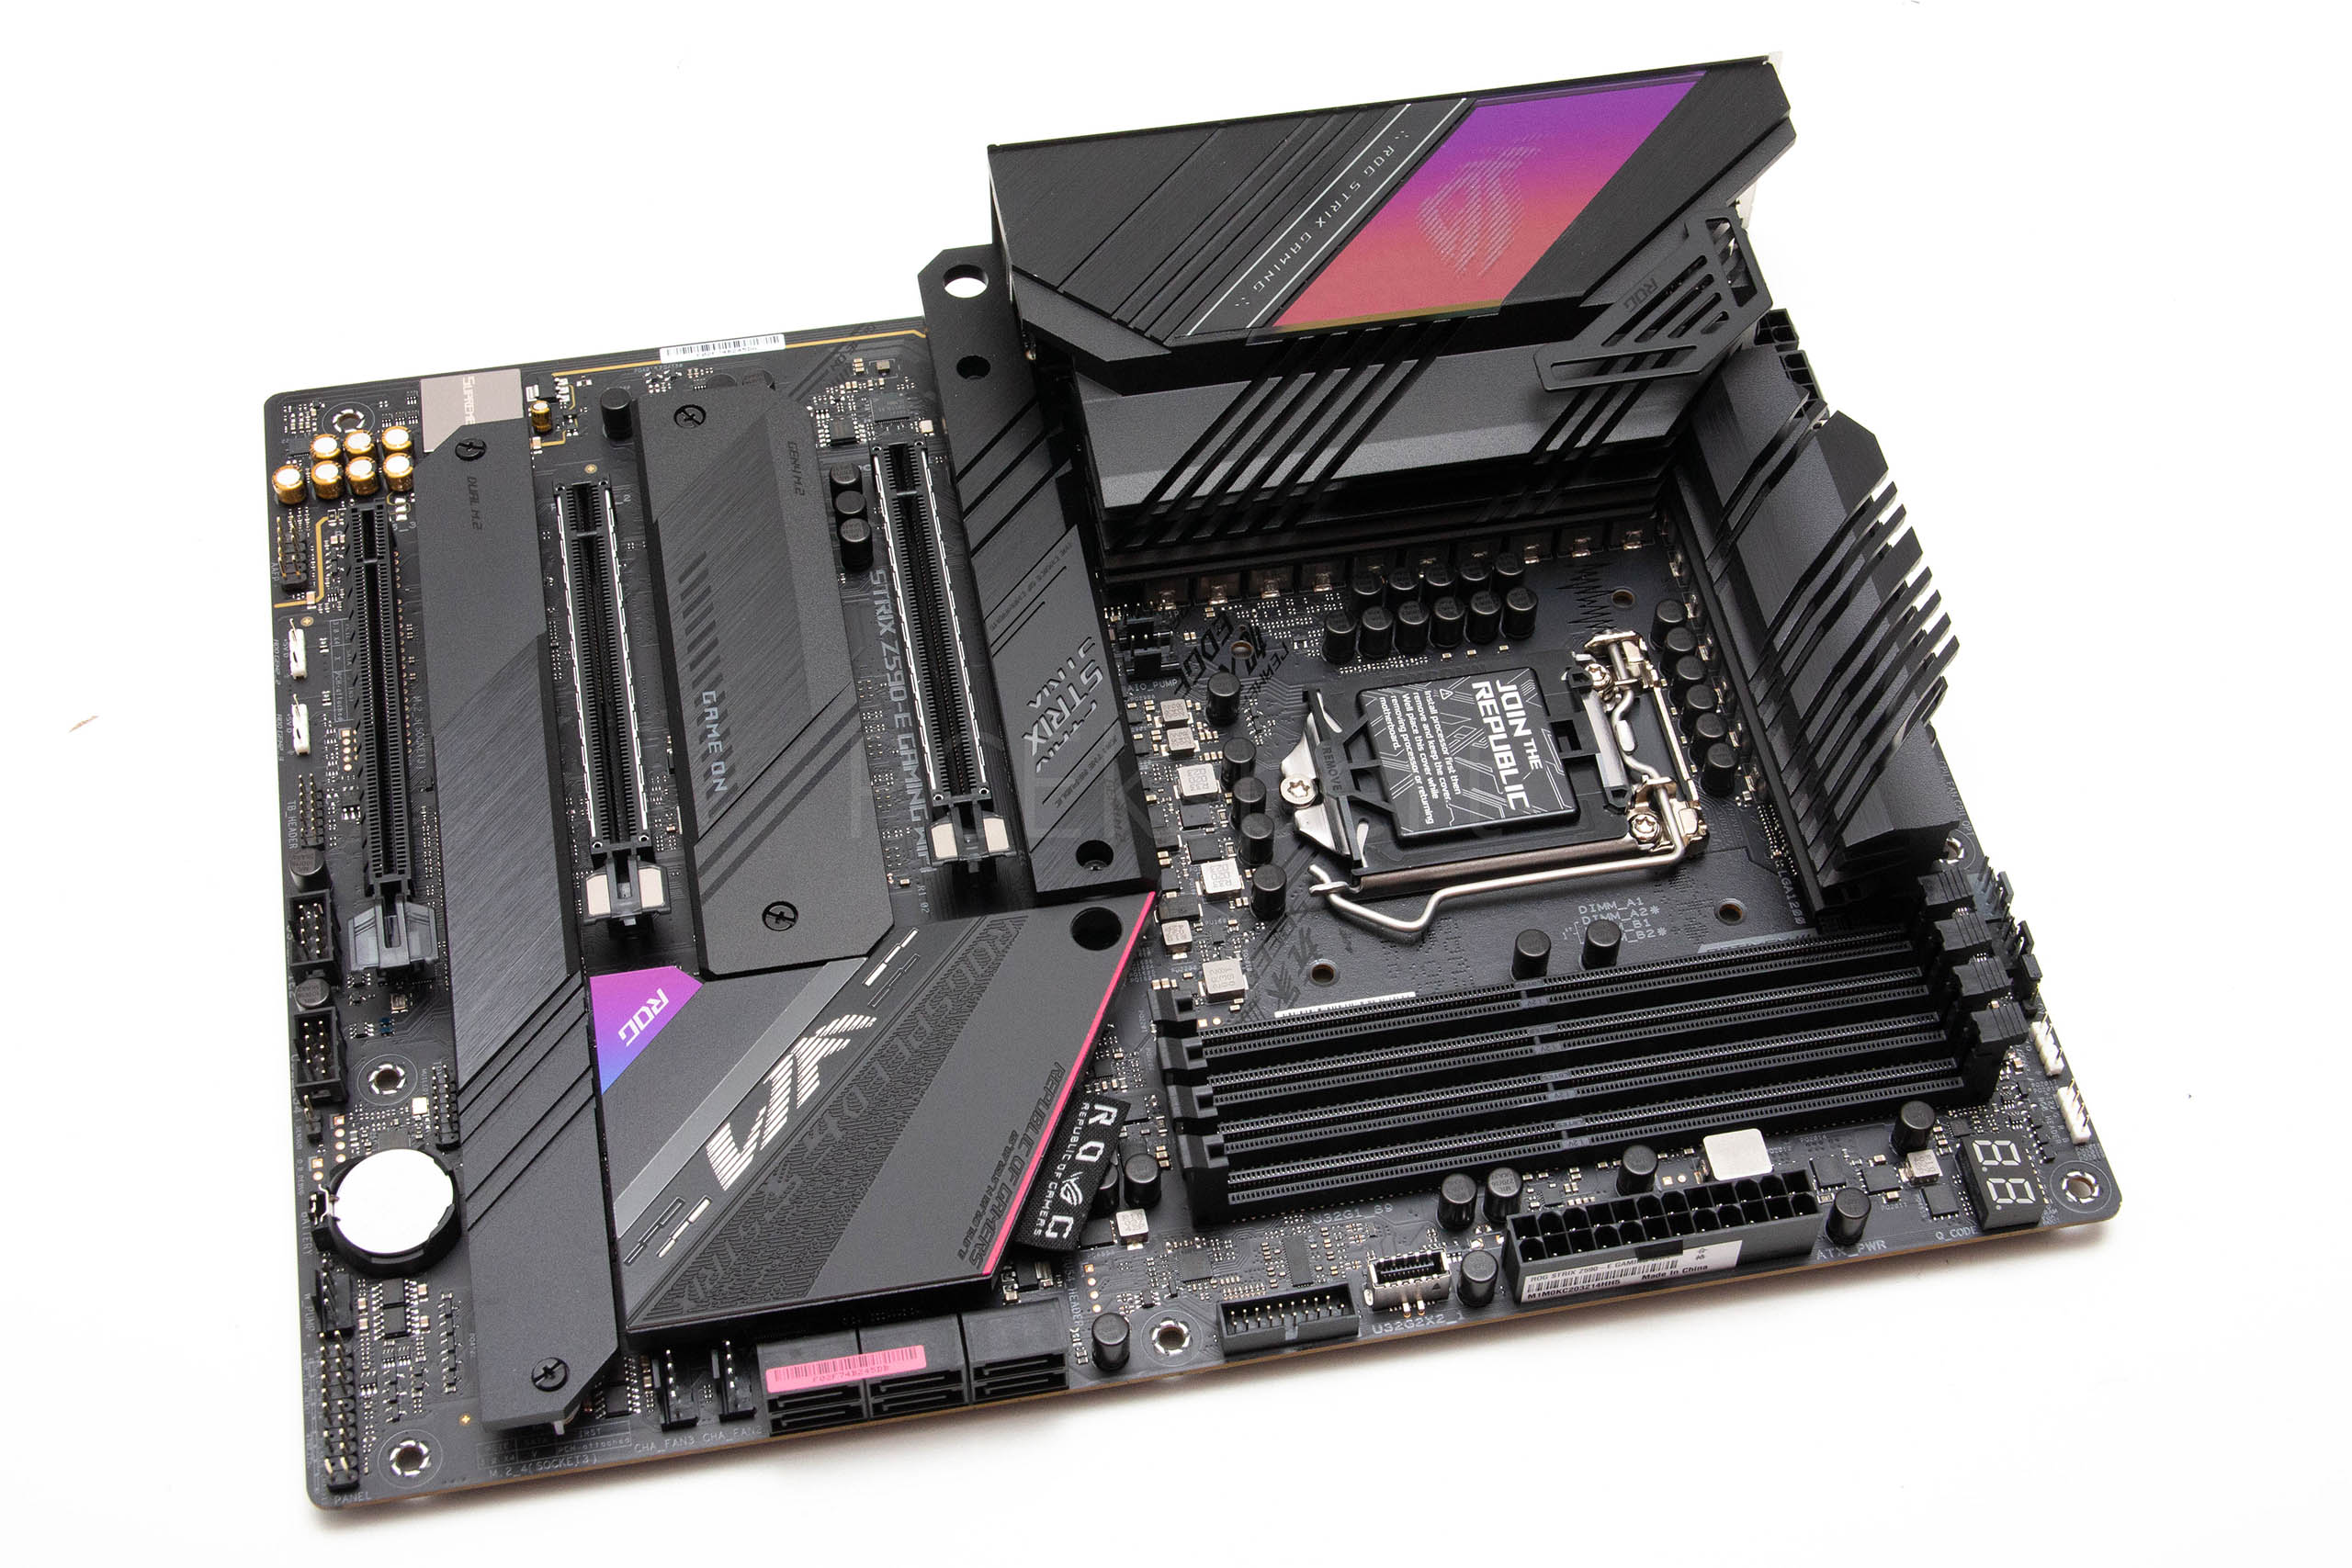 ASUS Strix Z590-E Gaming WiFi recenzija